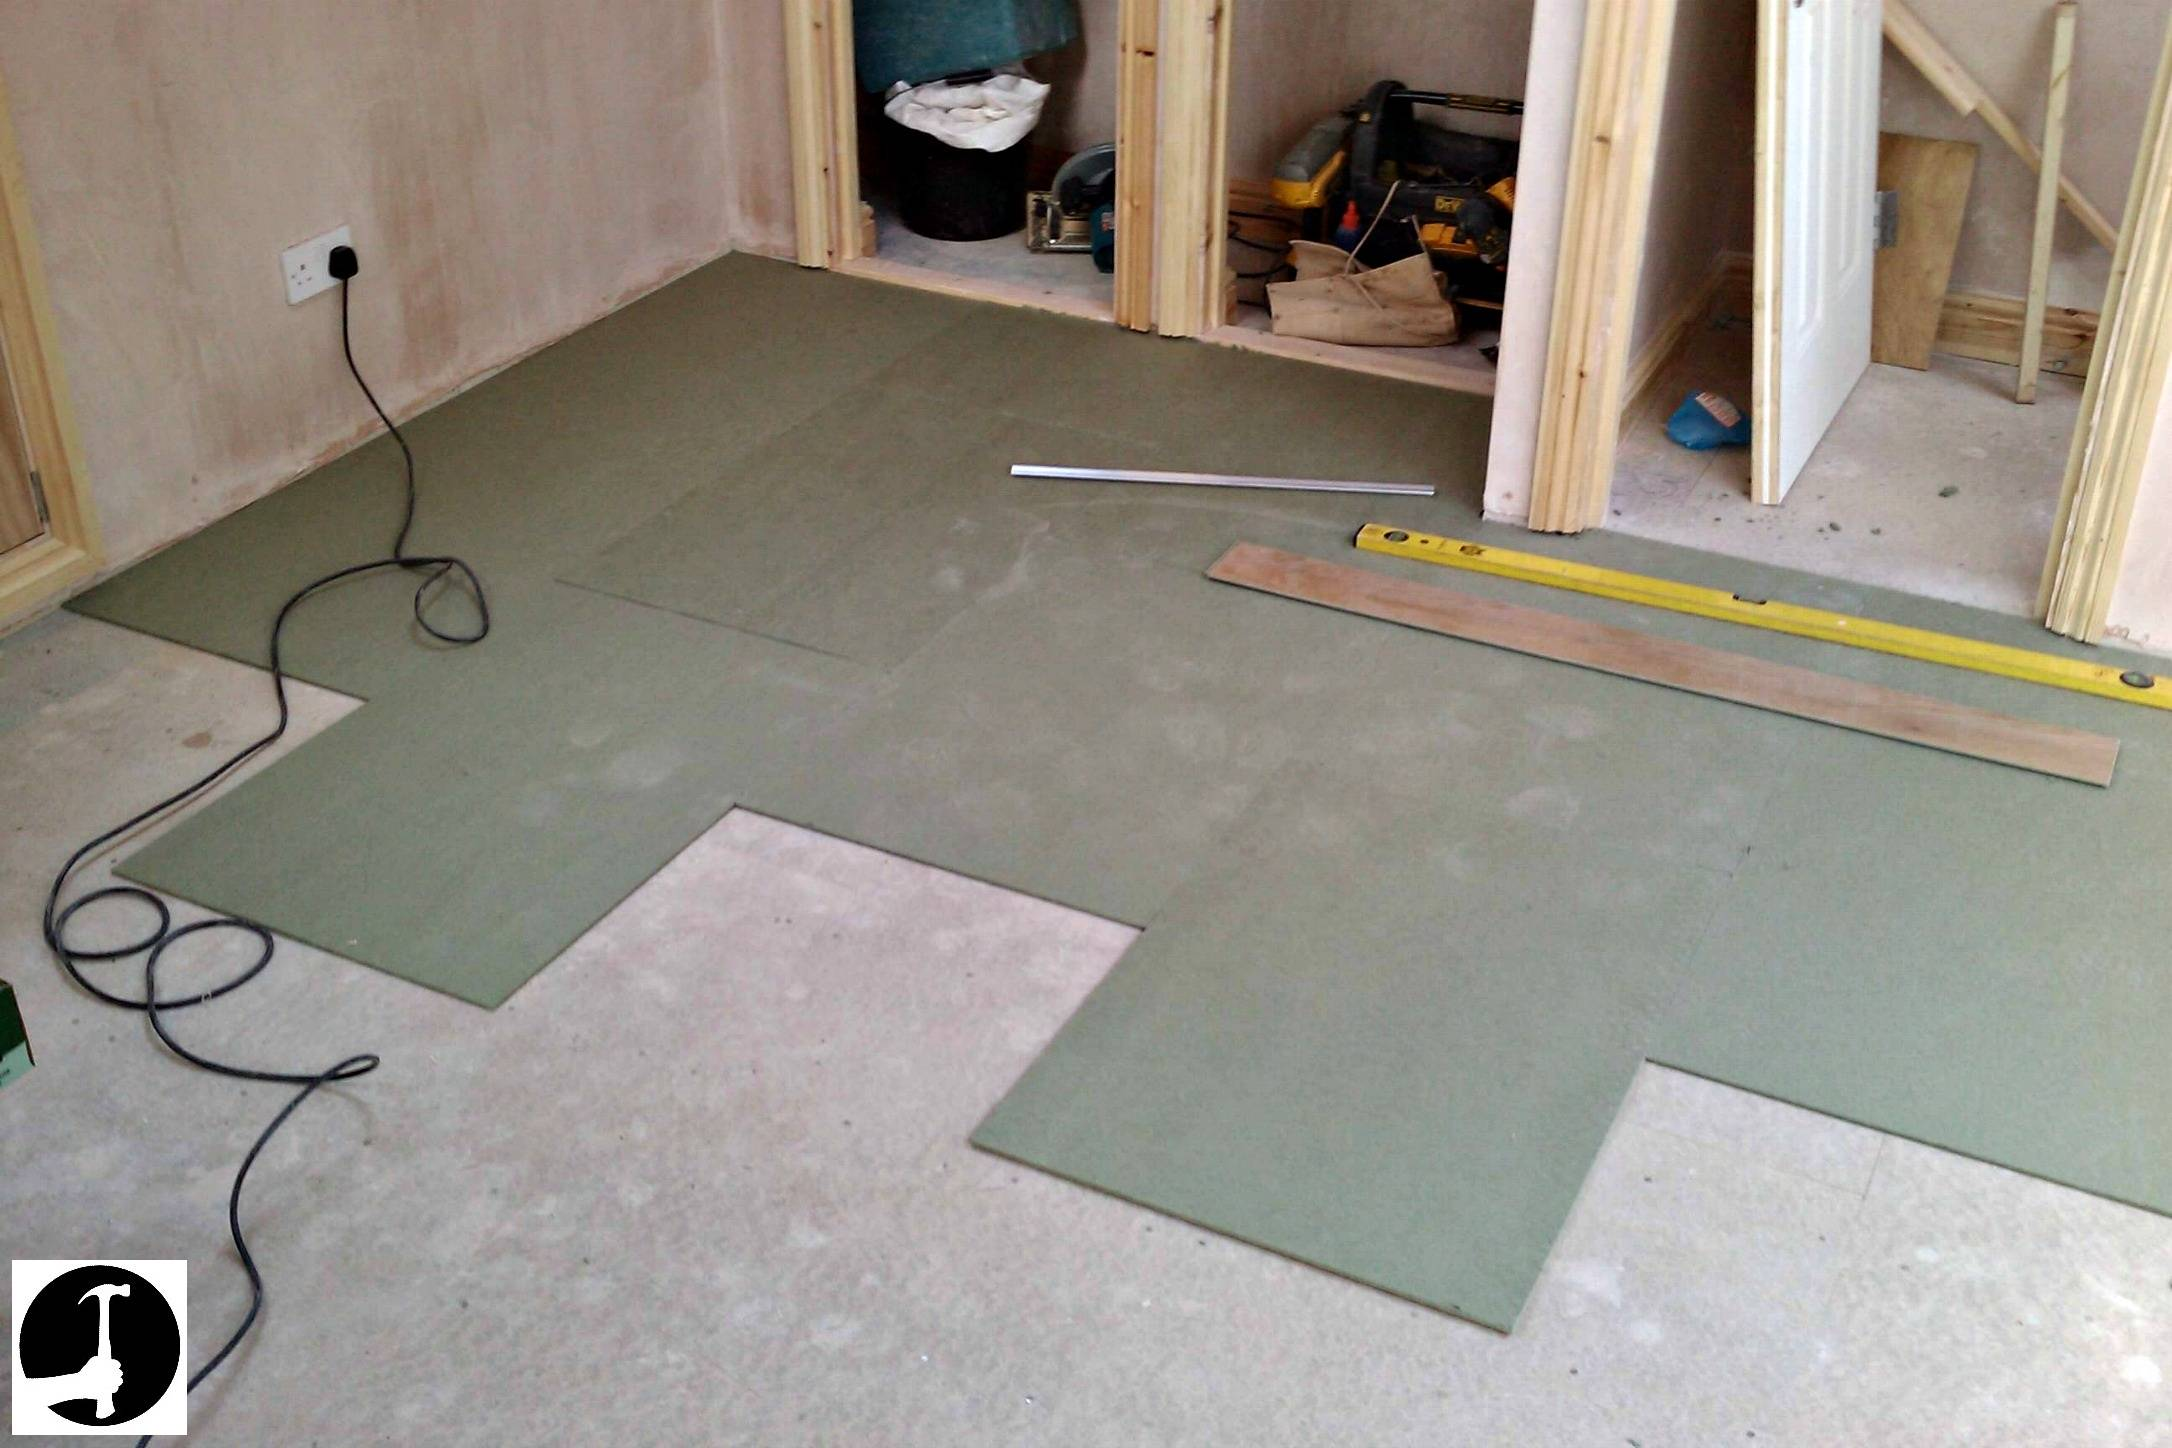 See How I Install Laminate Flooring To, How To Install Laminate Flooring On Concrete Slab